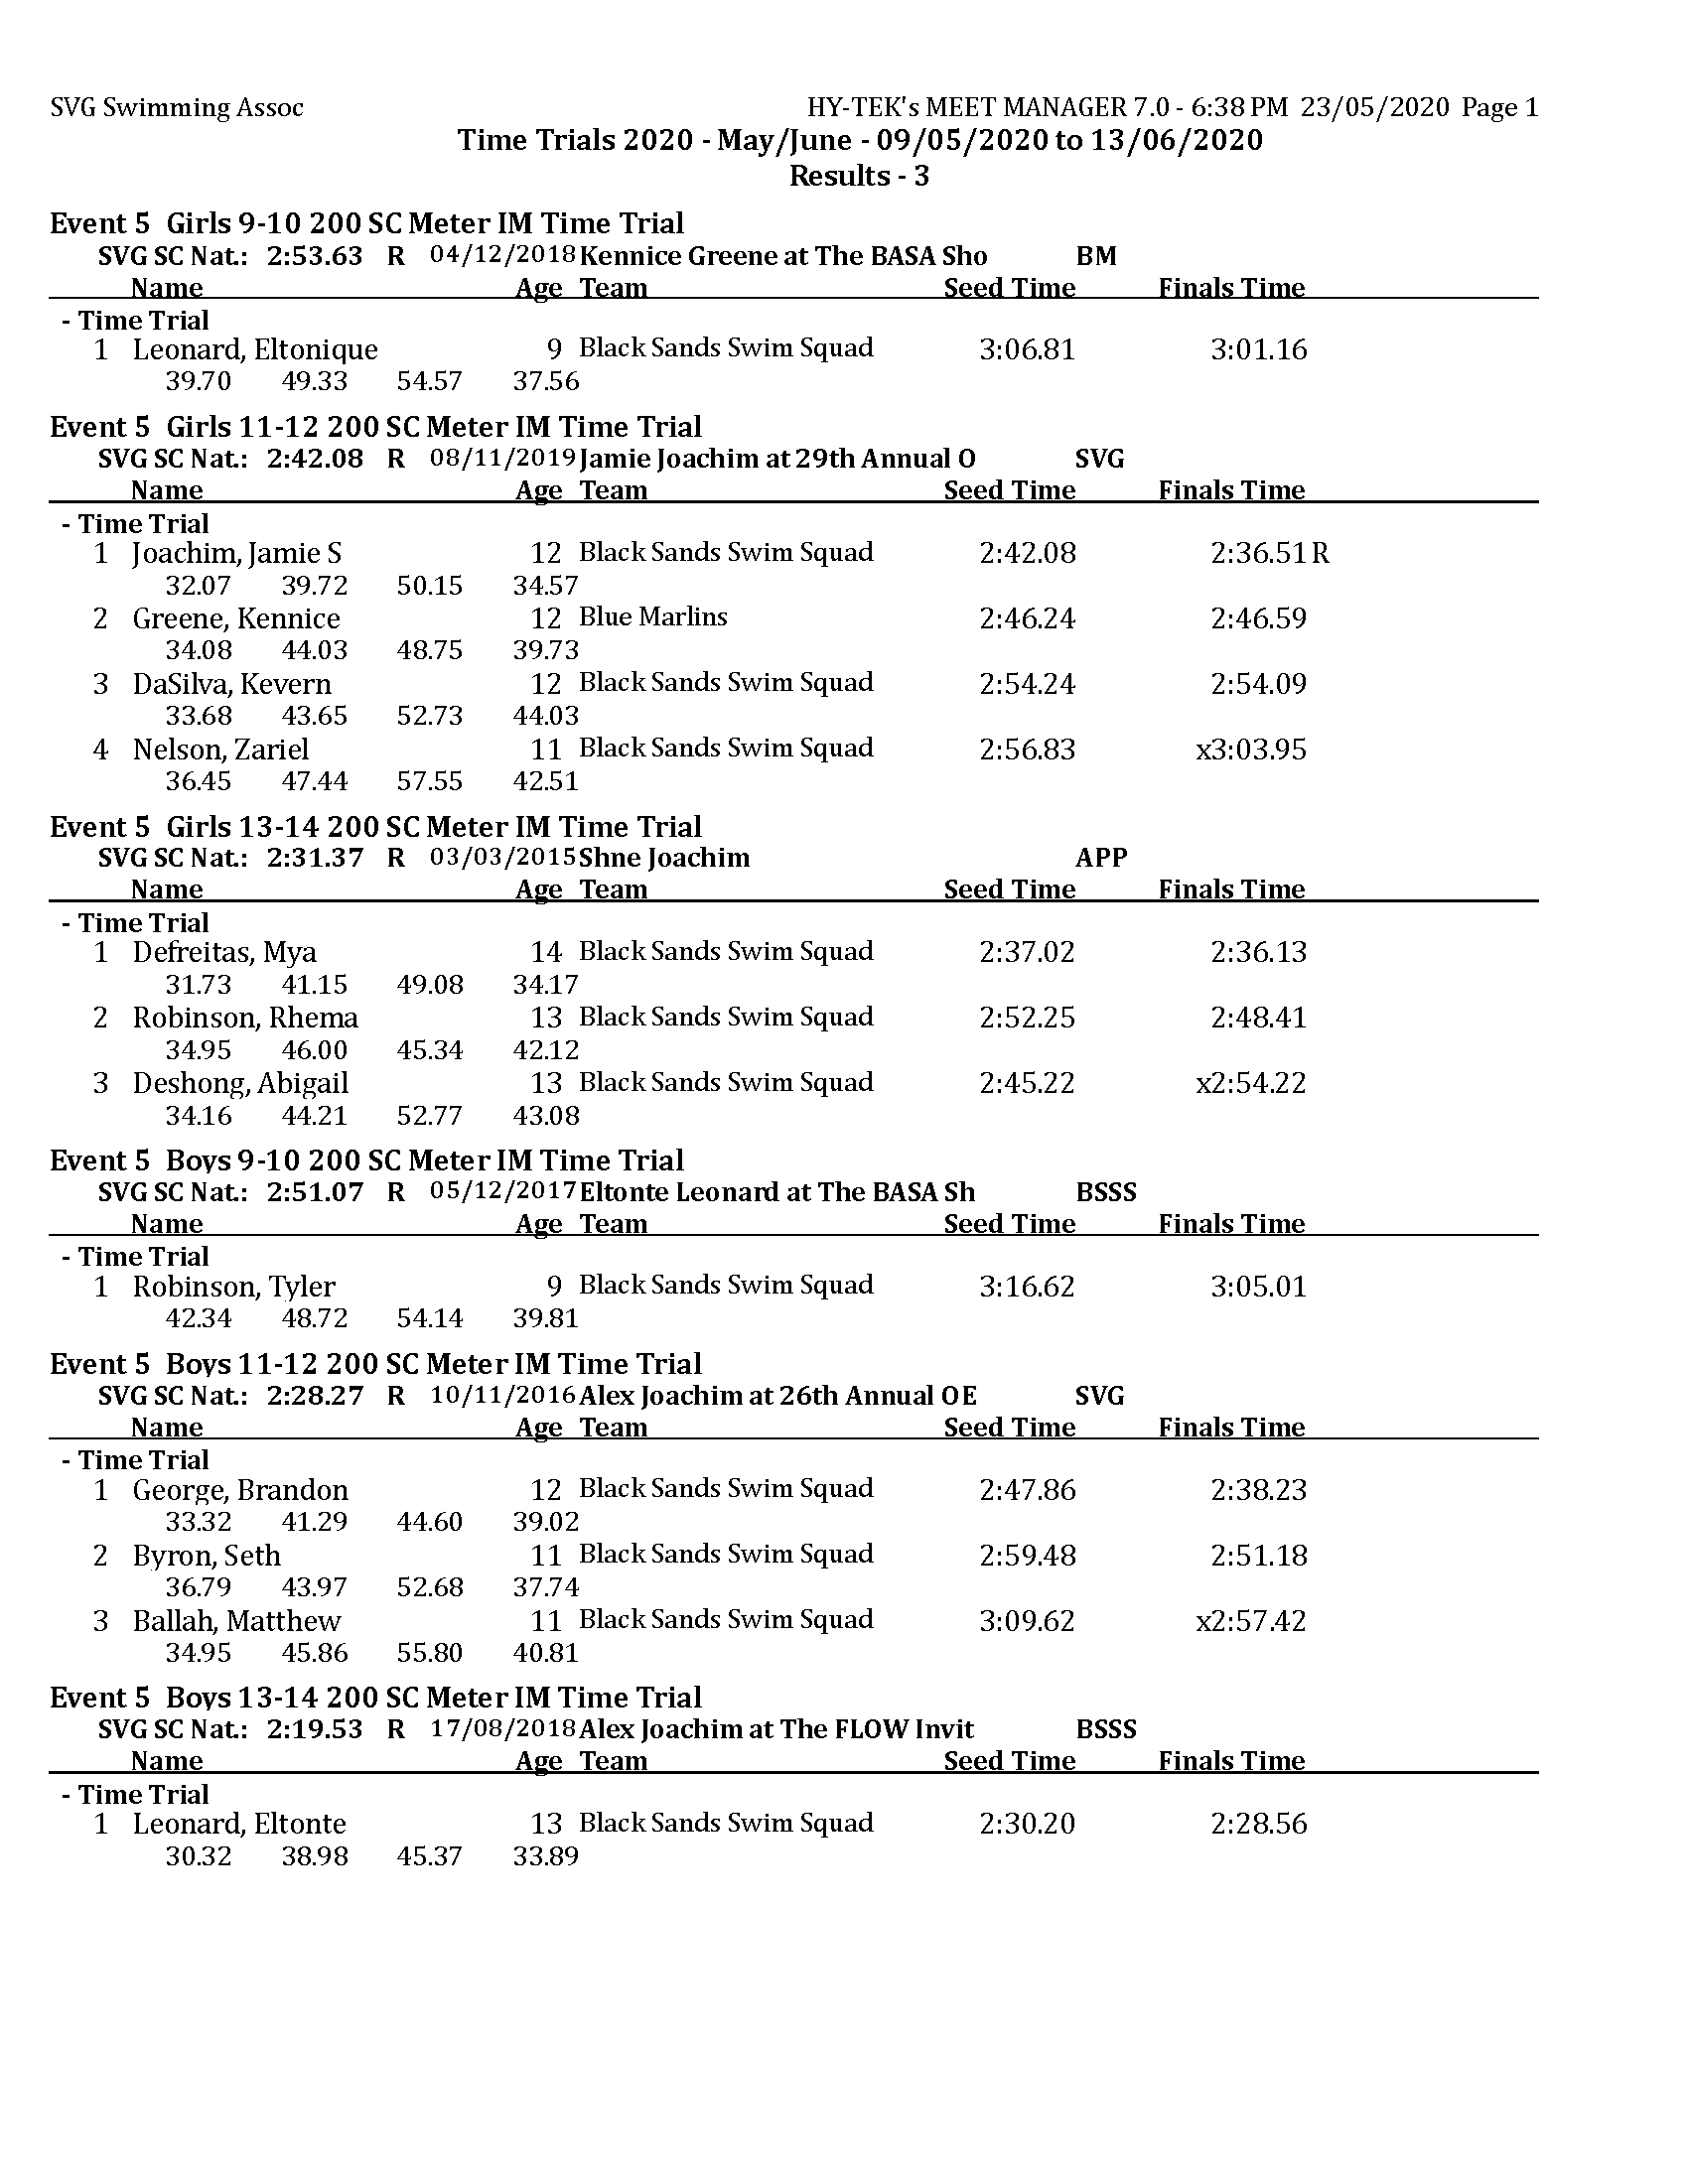 TT 2020 - May - Results day 3 MM_Page_1